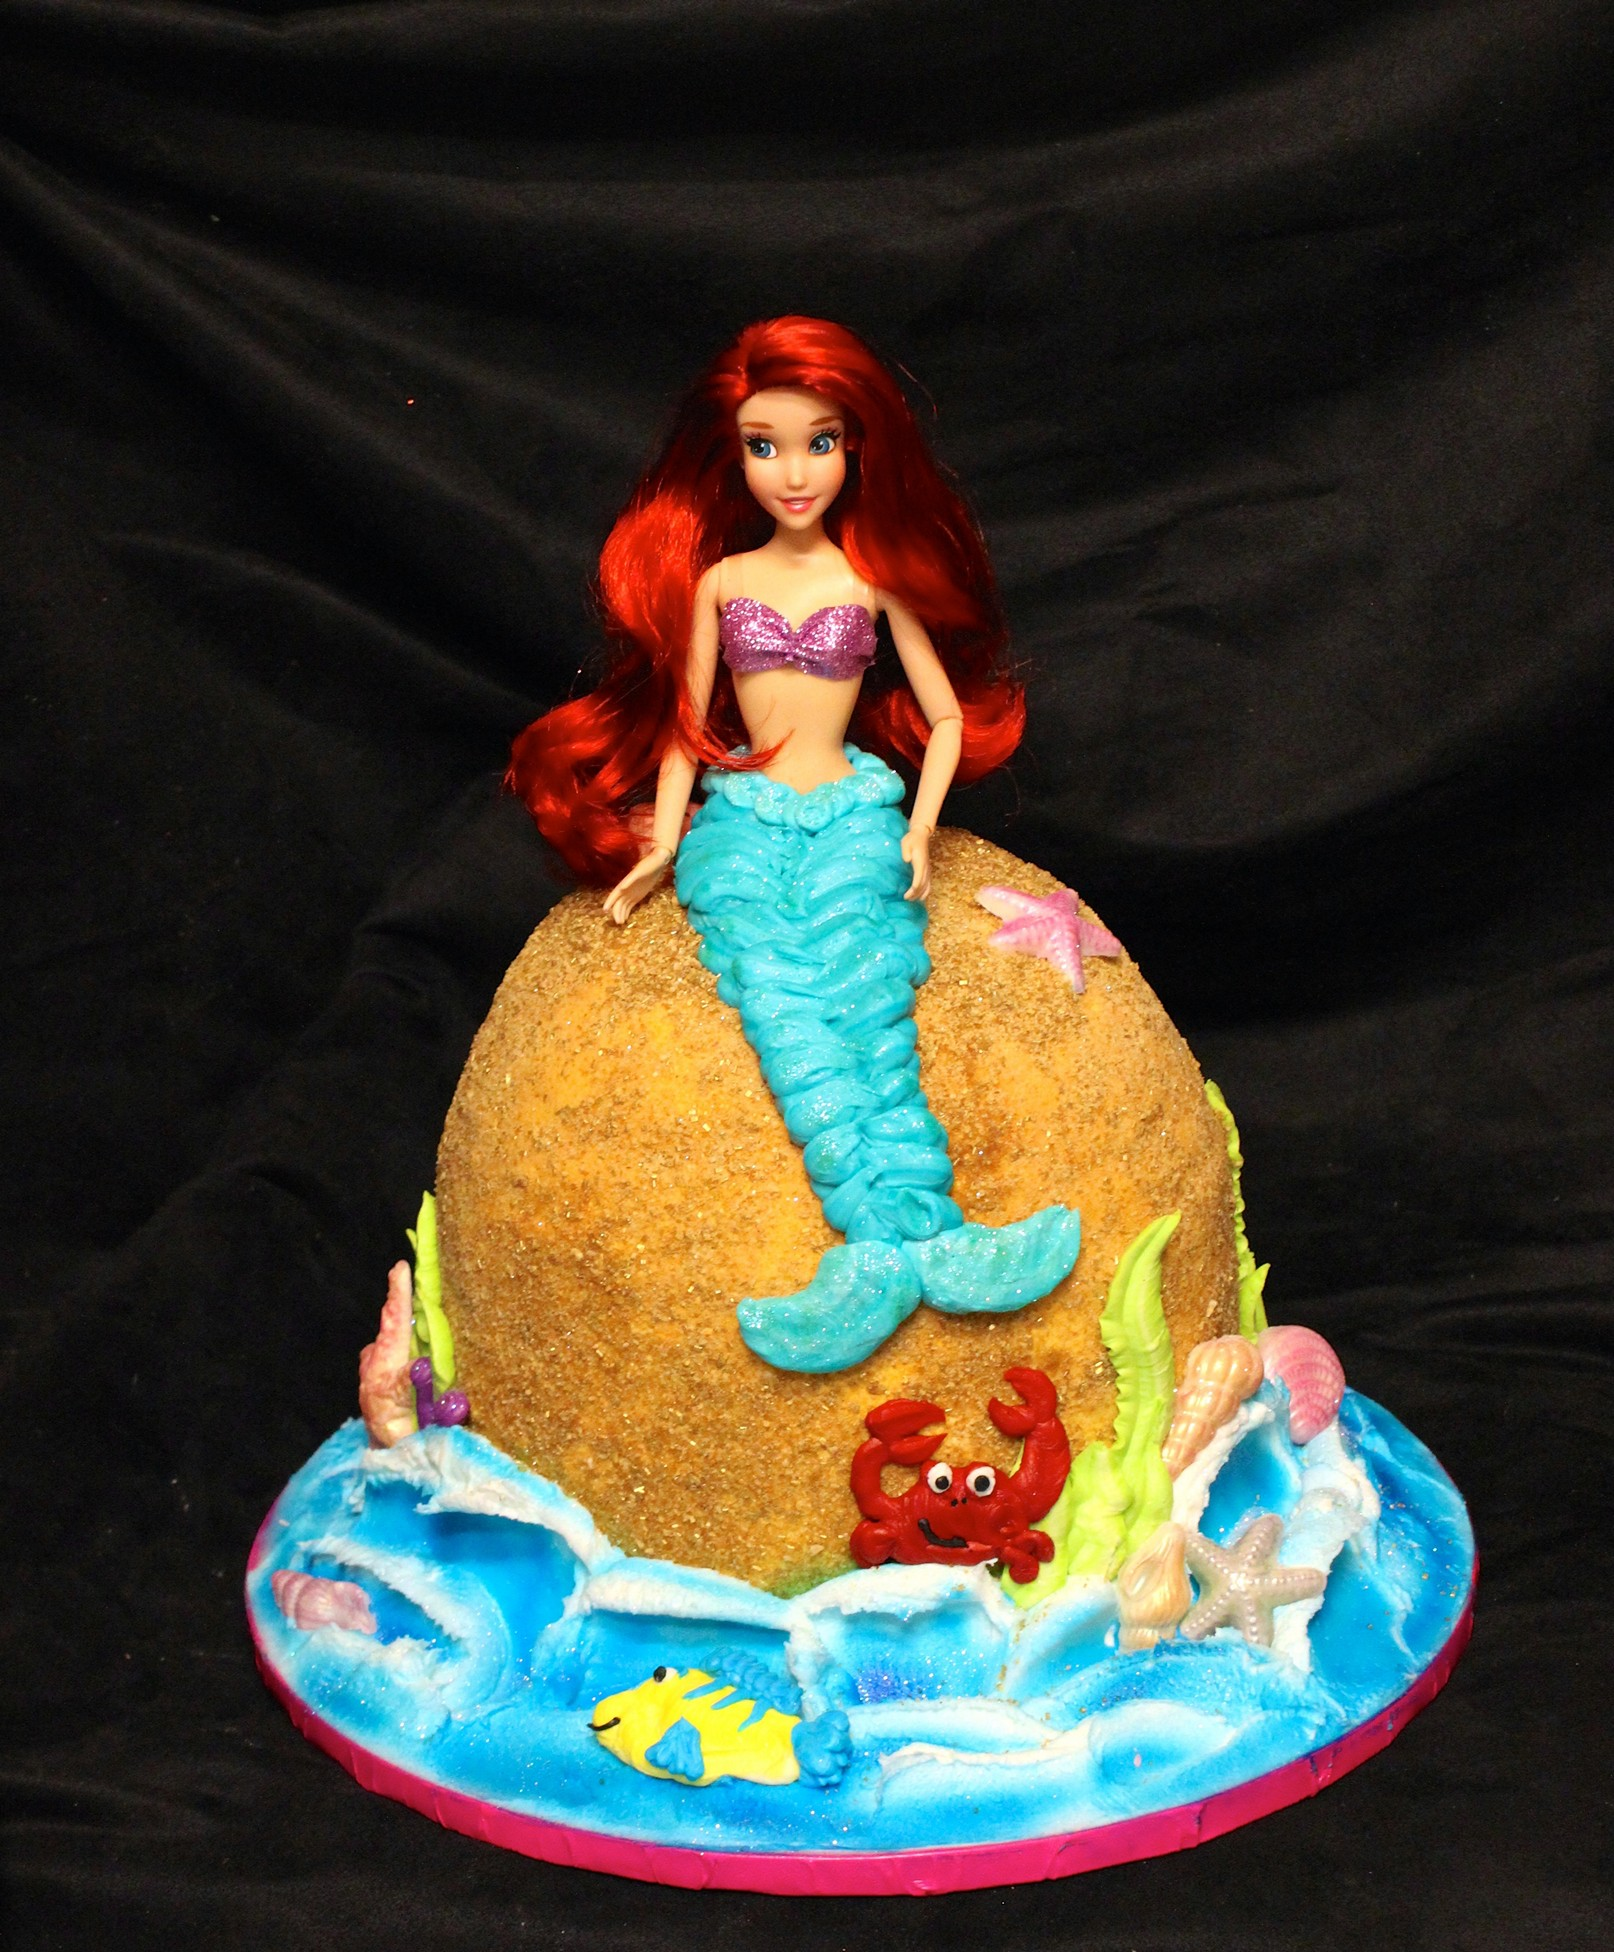 Doll Cake Make Your Princess Come Alive In A Cake